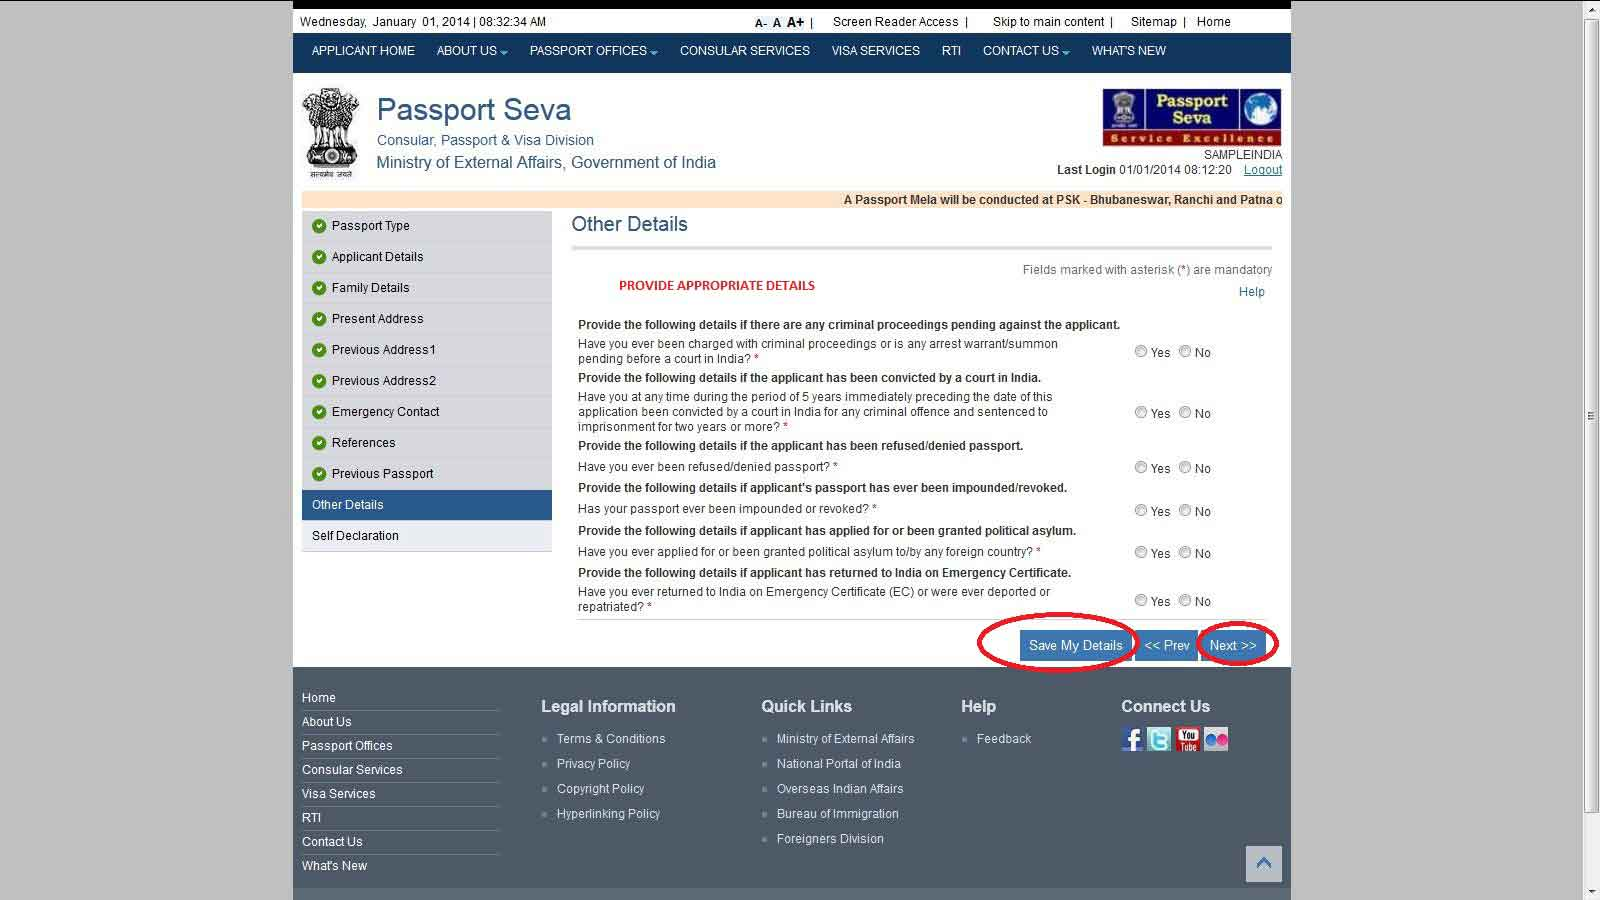 How To Apply For Passport Online, Online Passport Applicationtaxplore